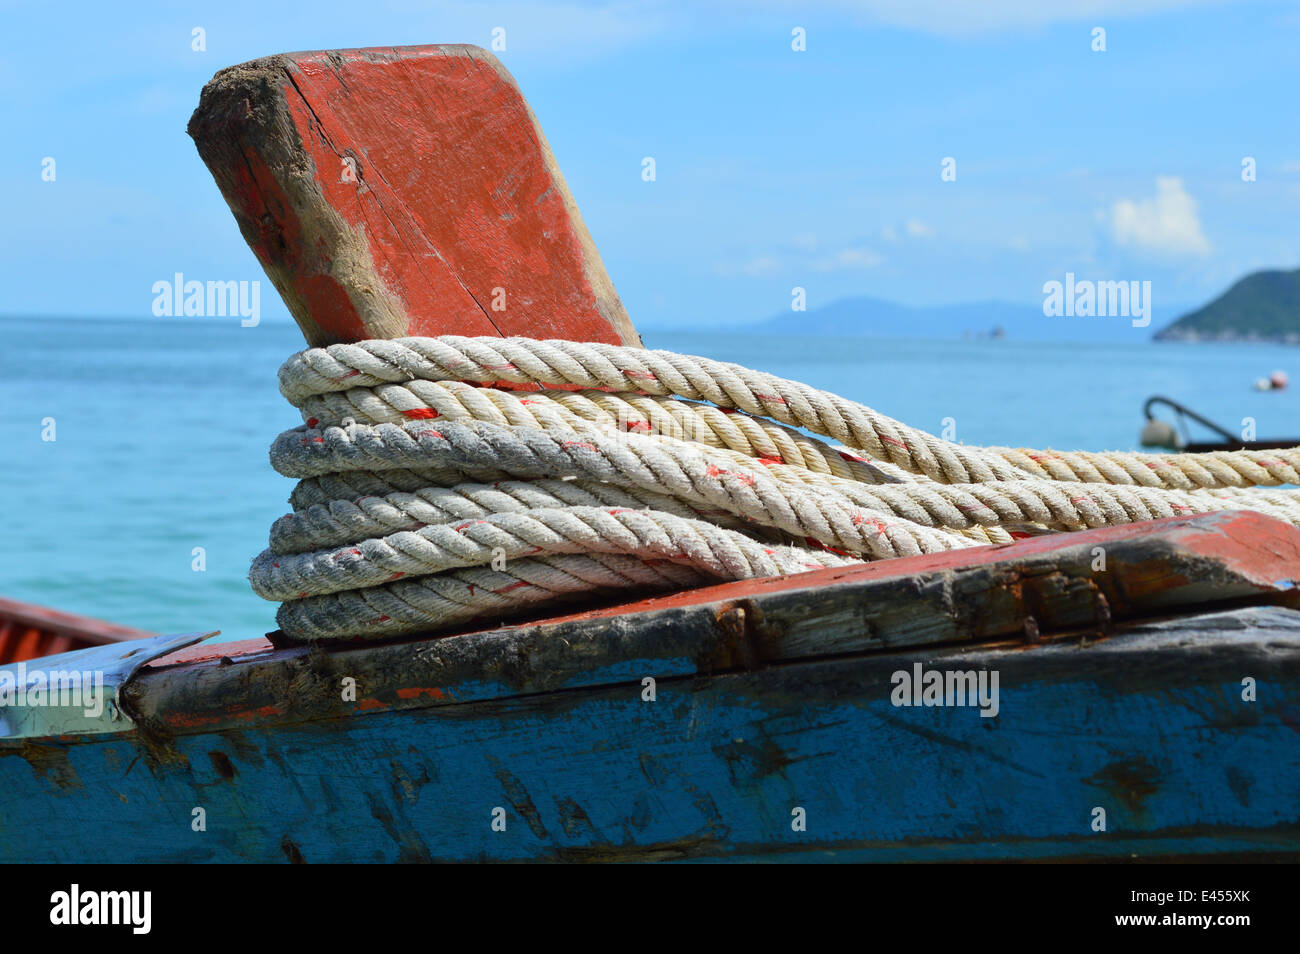 Traditional thai boat, Thailand - Stock Image